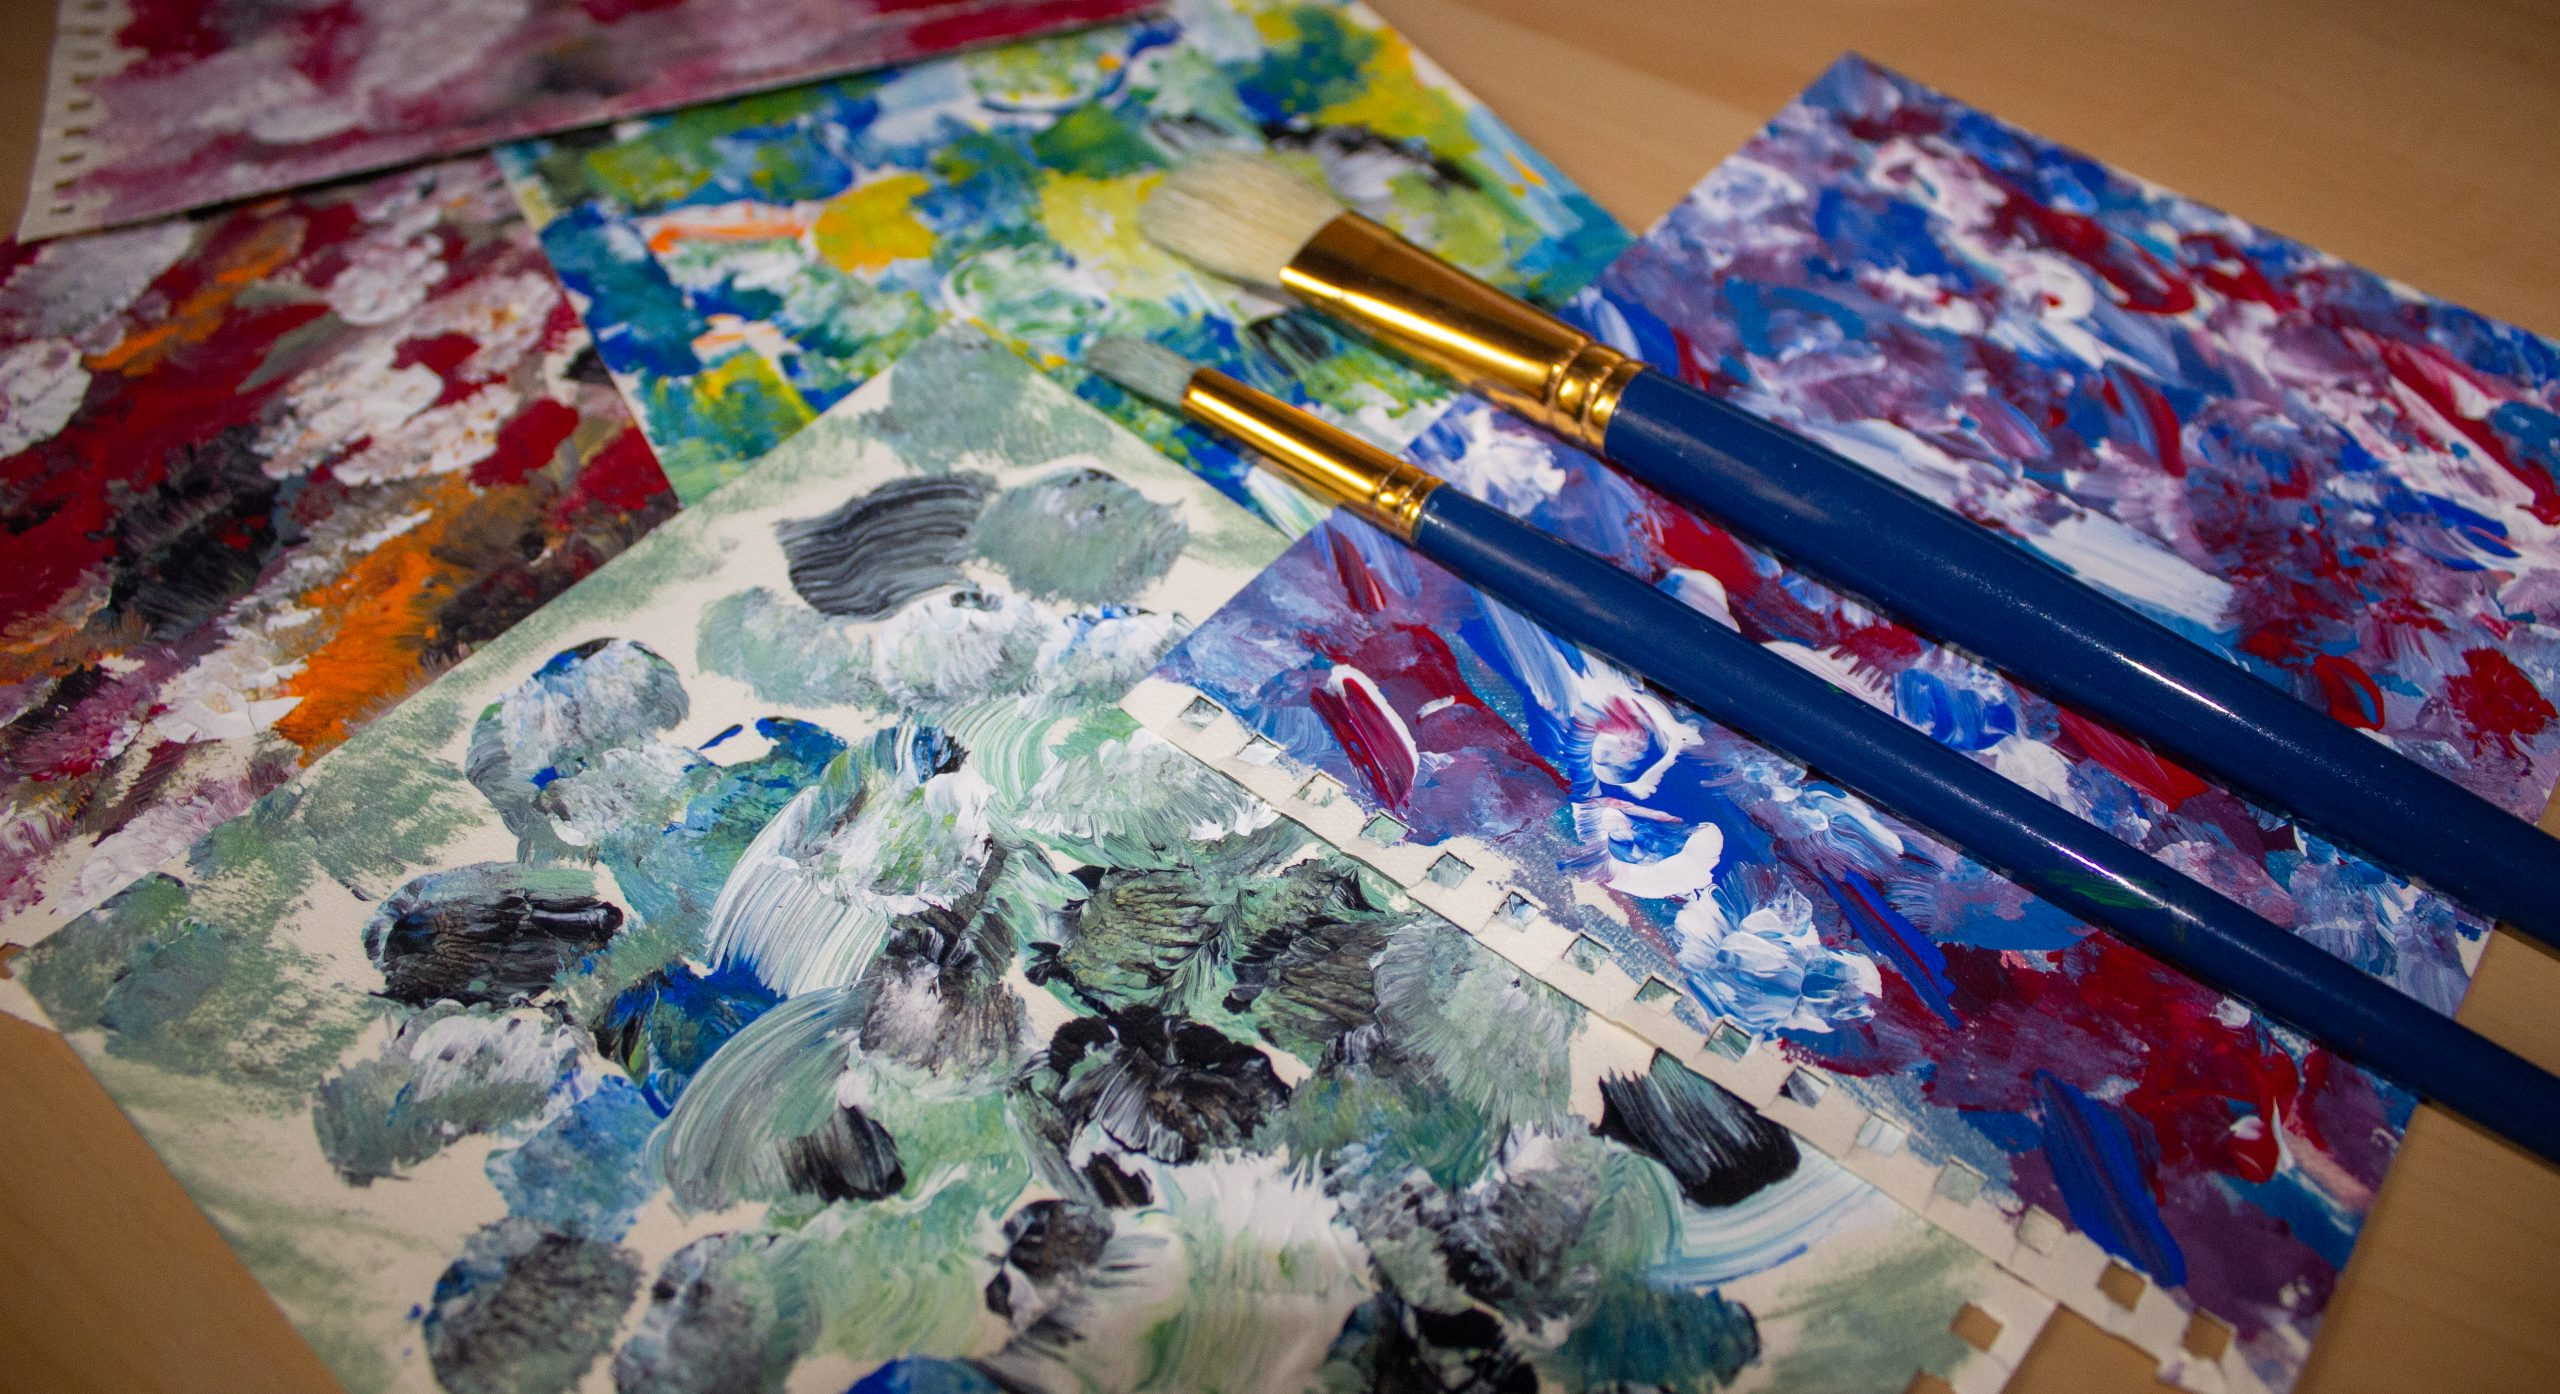 3 Creative Activities to Nourish Your Mental Health While Isolated